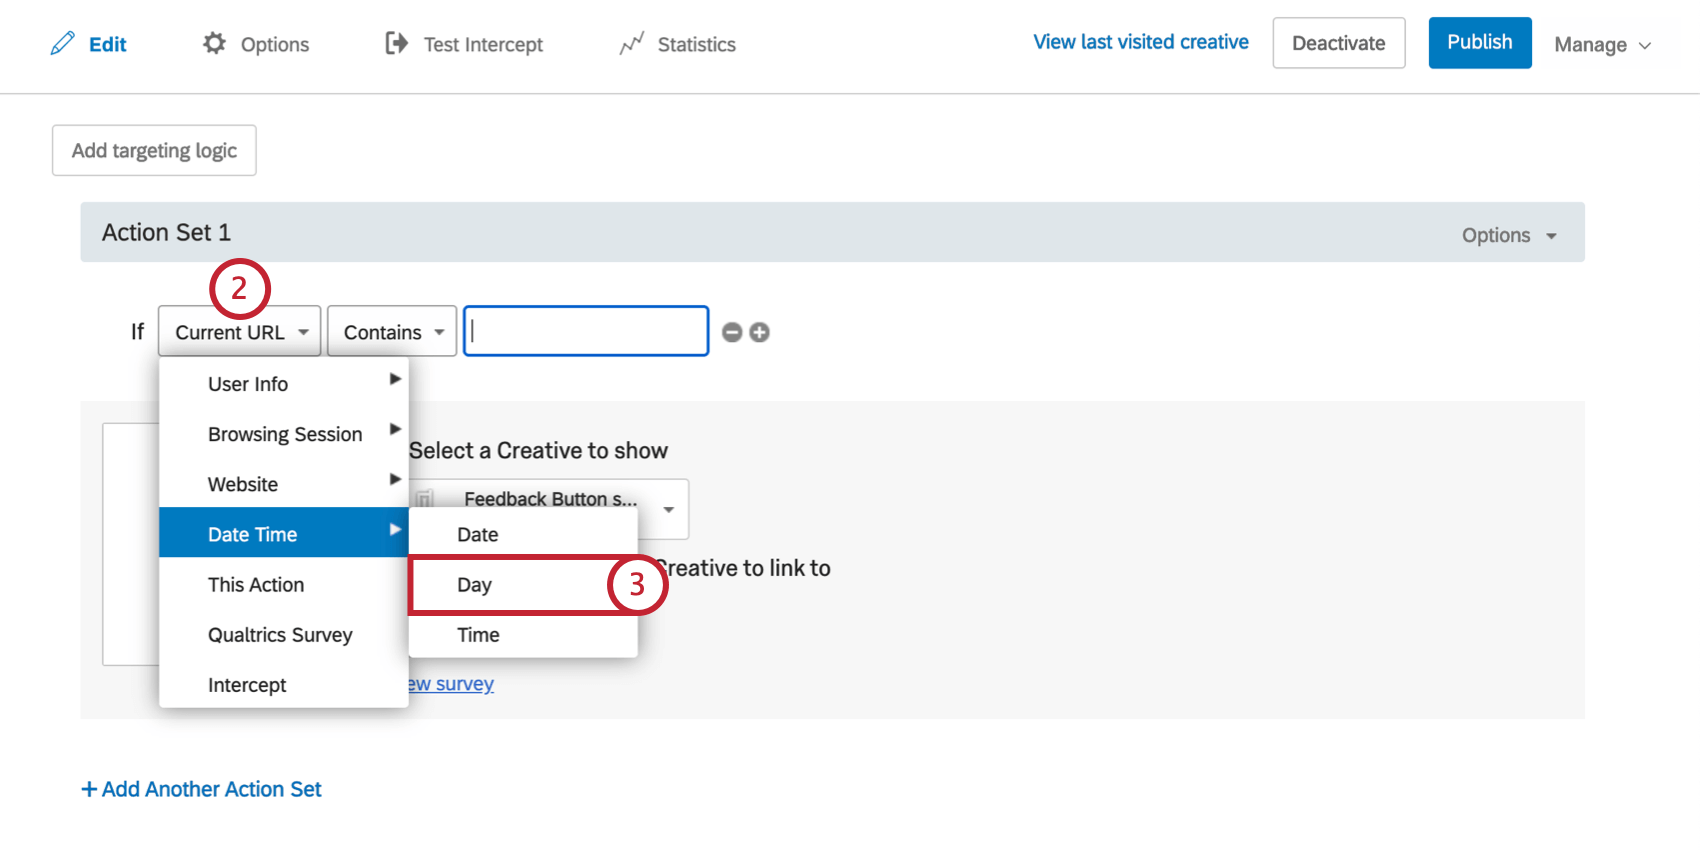 First field dropdown, date time is highlighted, day is selected